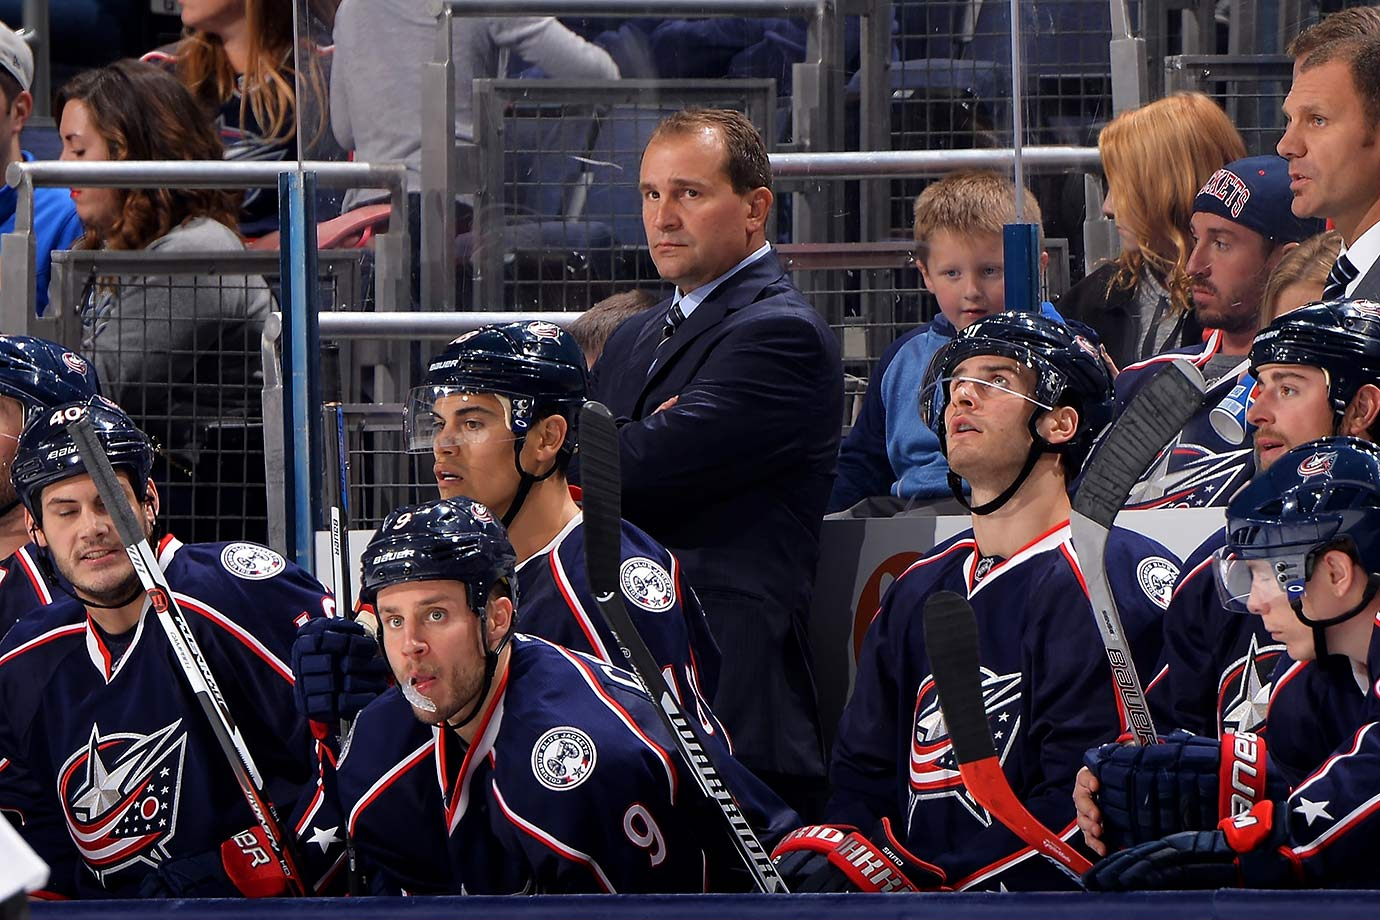 """After guiding the Jackets to only the second playoff berth in their 13-year history, Richards presided over an injury-riddled 2014-15 that saw Columbus fall short but end the season on a torrid 15-1-1 run that raised expectations. The wheels came off again during a disastrous 0-7-0 start marked by clown car defense and the meltdown of goalie Sergei Bobrovsky. """"We're not responding the right way,"""" GM Jarmo Kekalainen lamented while introducing Richards' replacement: the notorious whipcracker John Tortorella."""